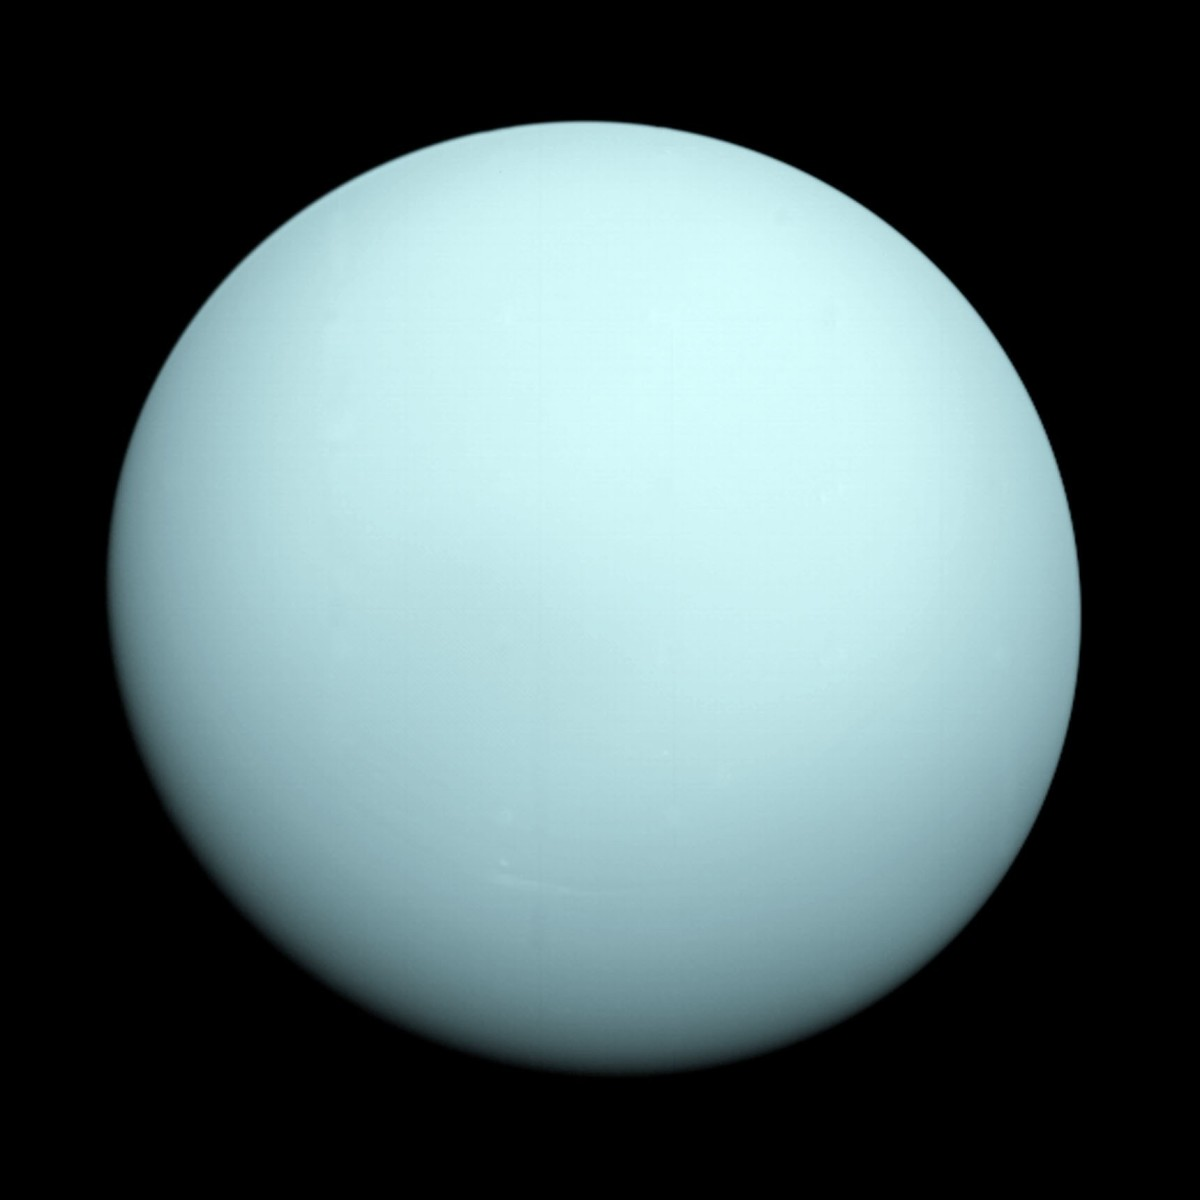 The lopsided giant - Uranus also has rings (although not visible in this shot taken by Voyager 2 in 1986) and the brightest clouds in the solar system